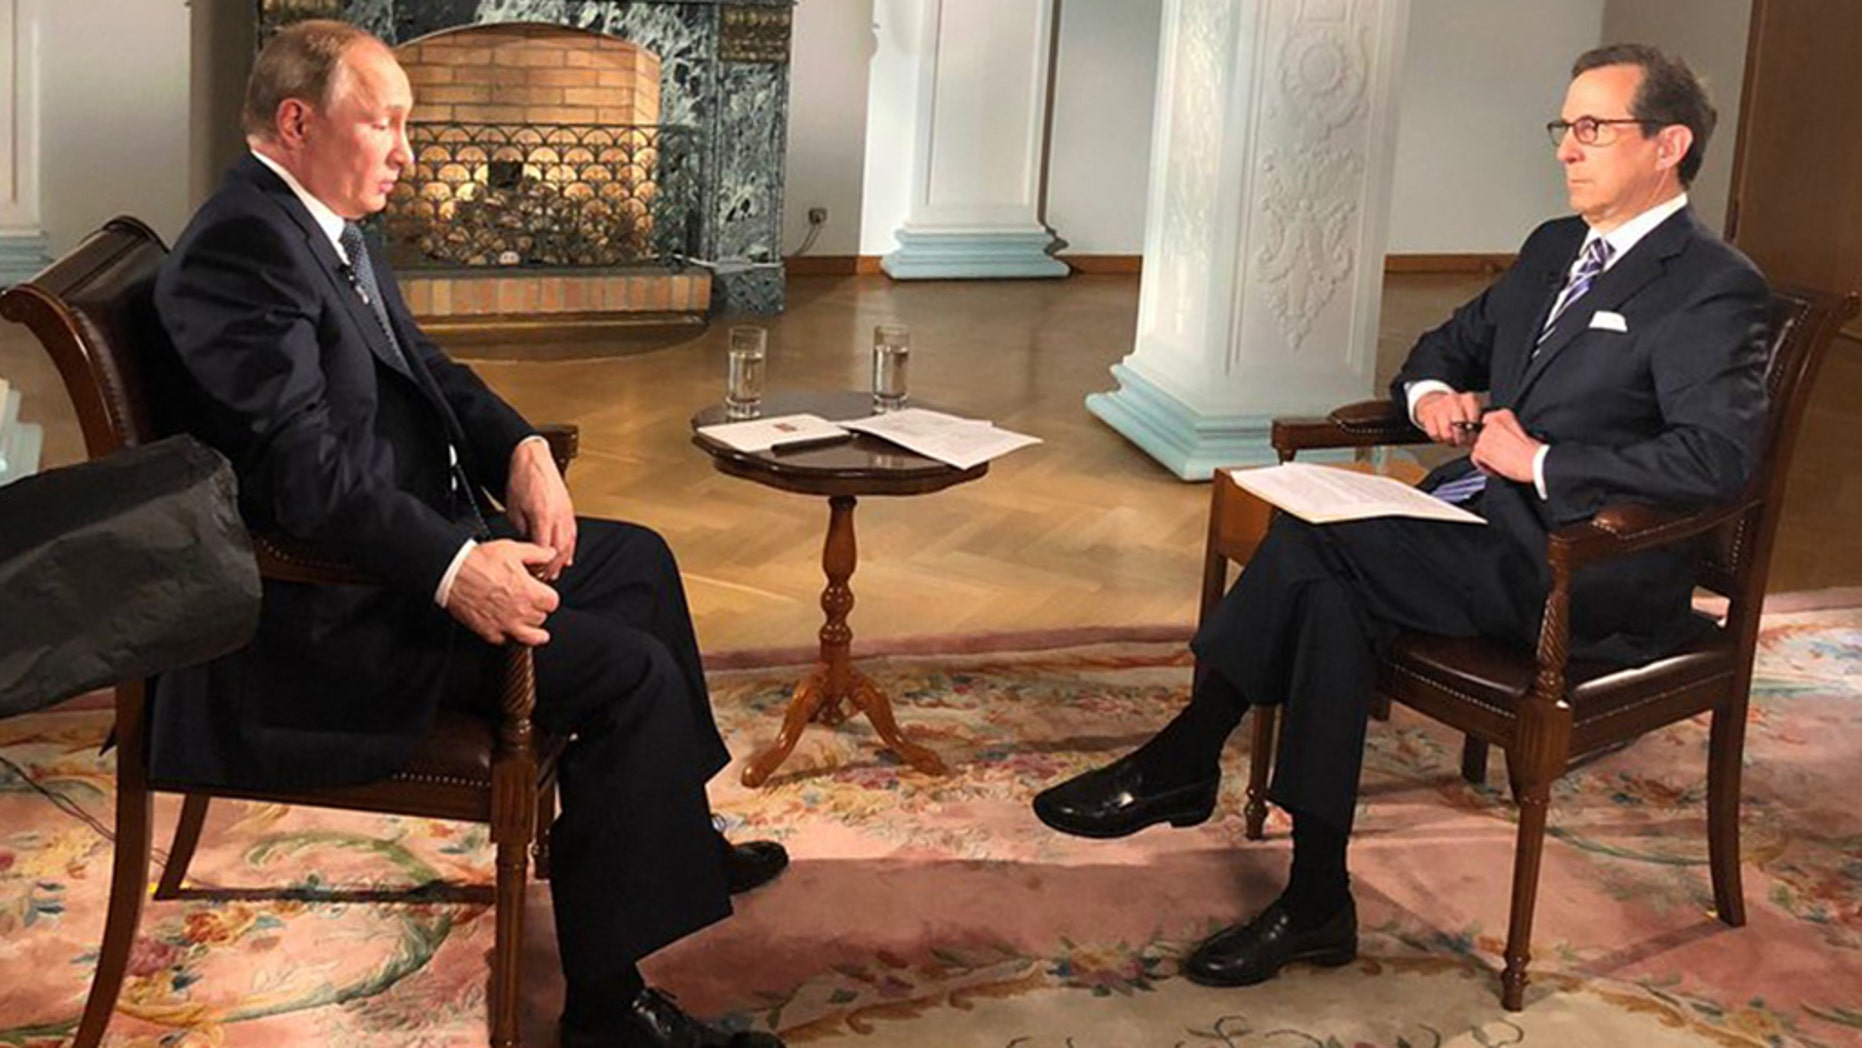 Fox News host Chris Wallace received praise for a recent interview with Russian President Vladimir Putin.